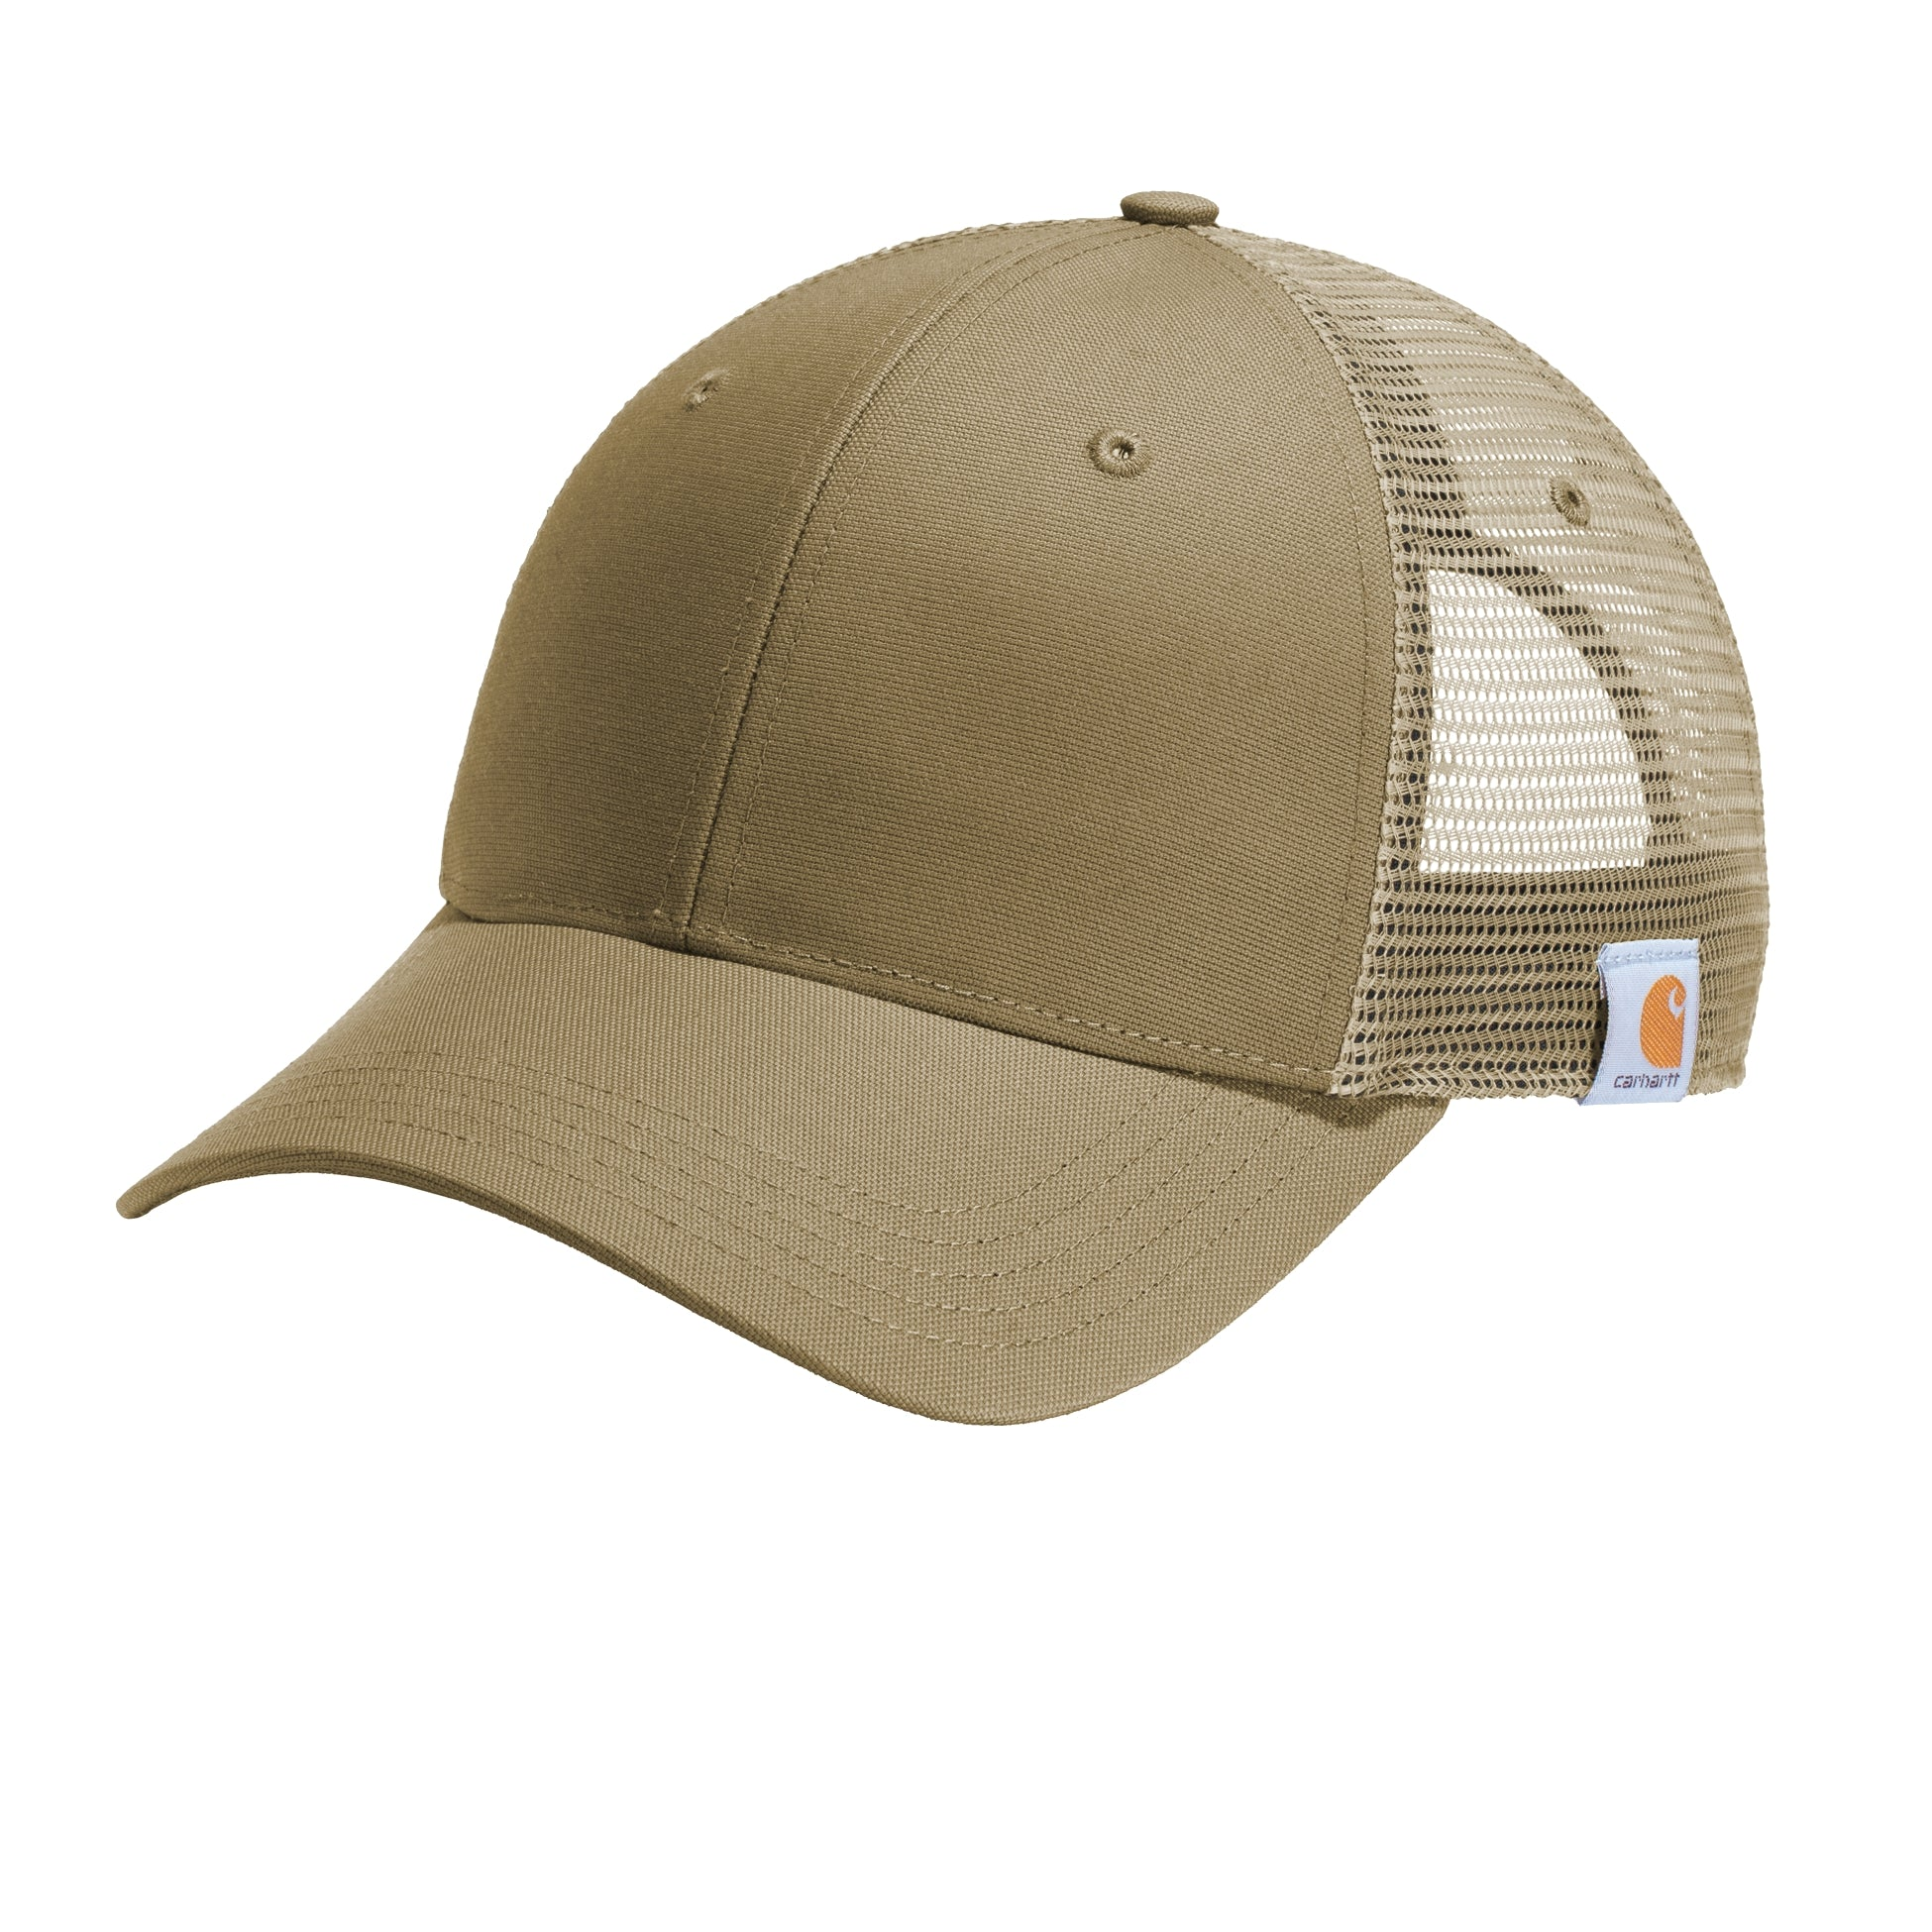 D1944 Rugged Professional Series Cap